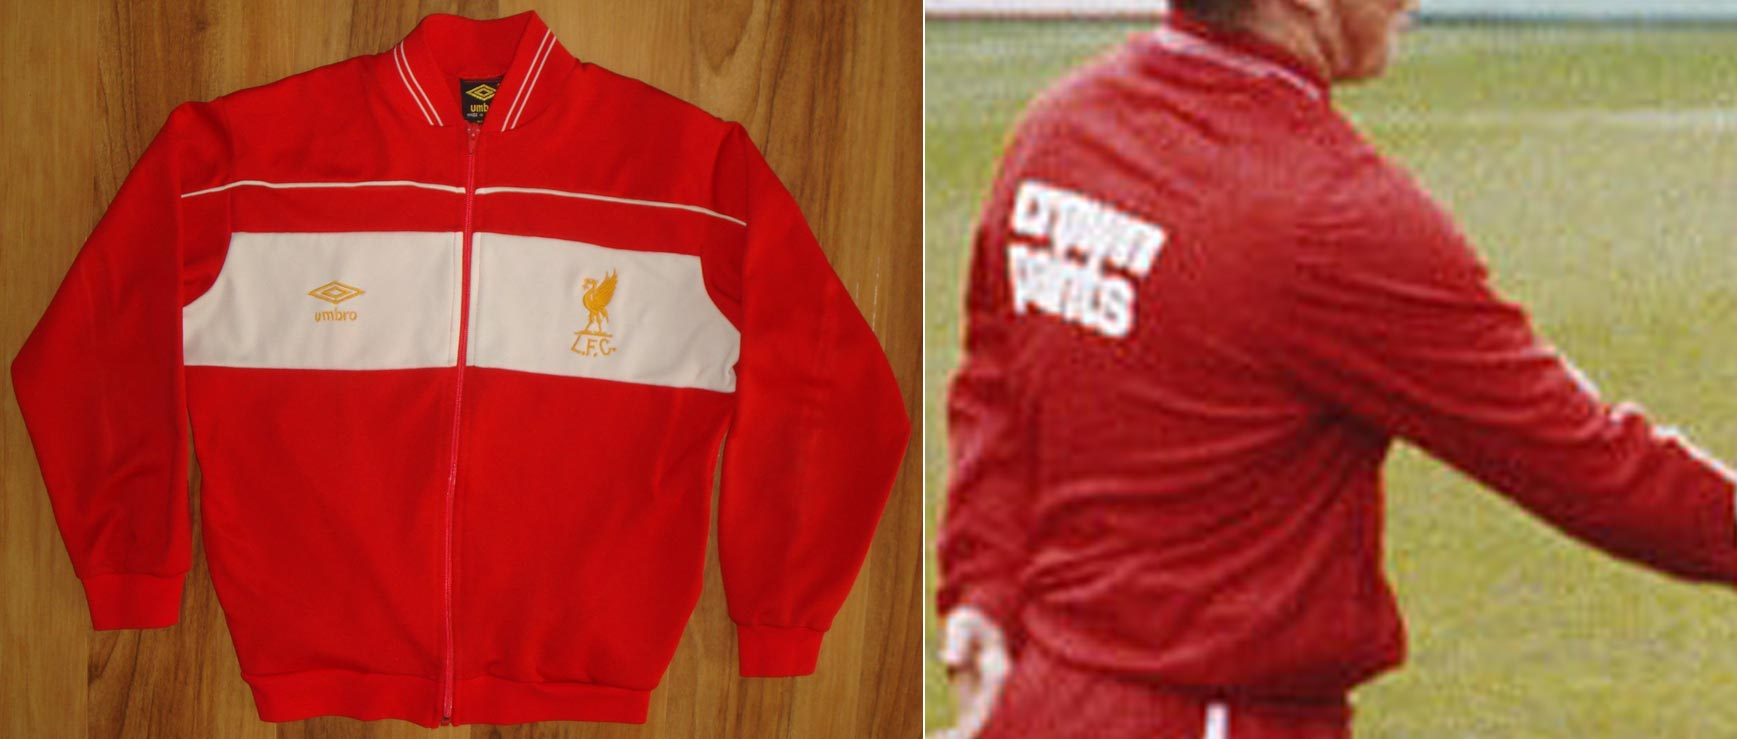 1983-4-htracksuittop.jpg